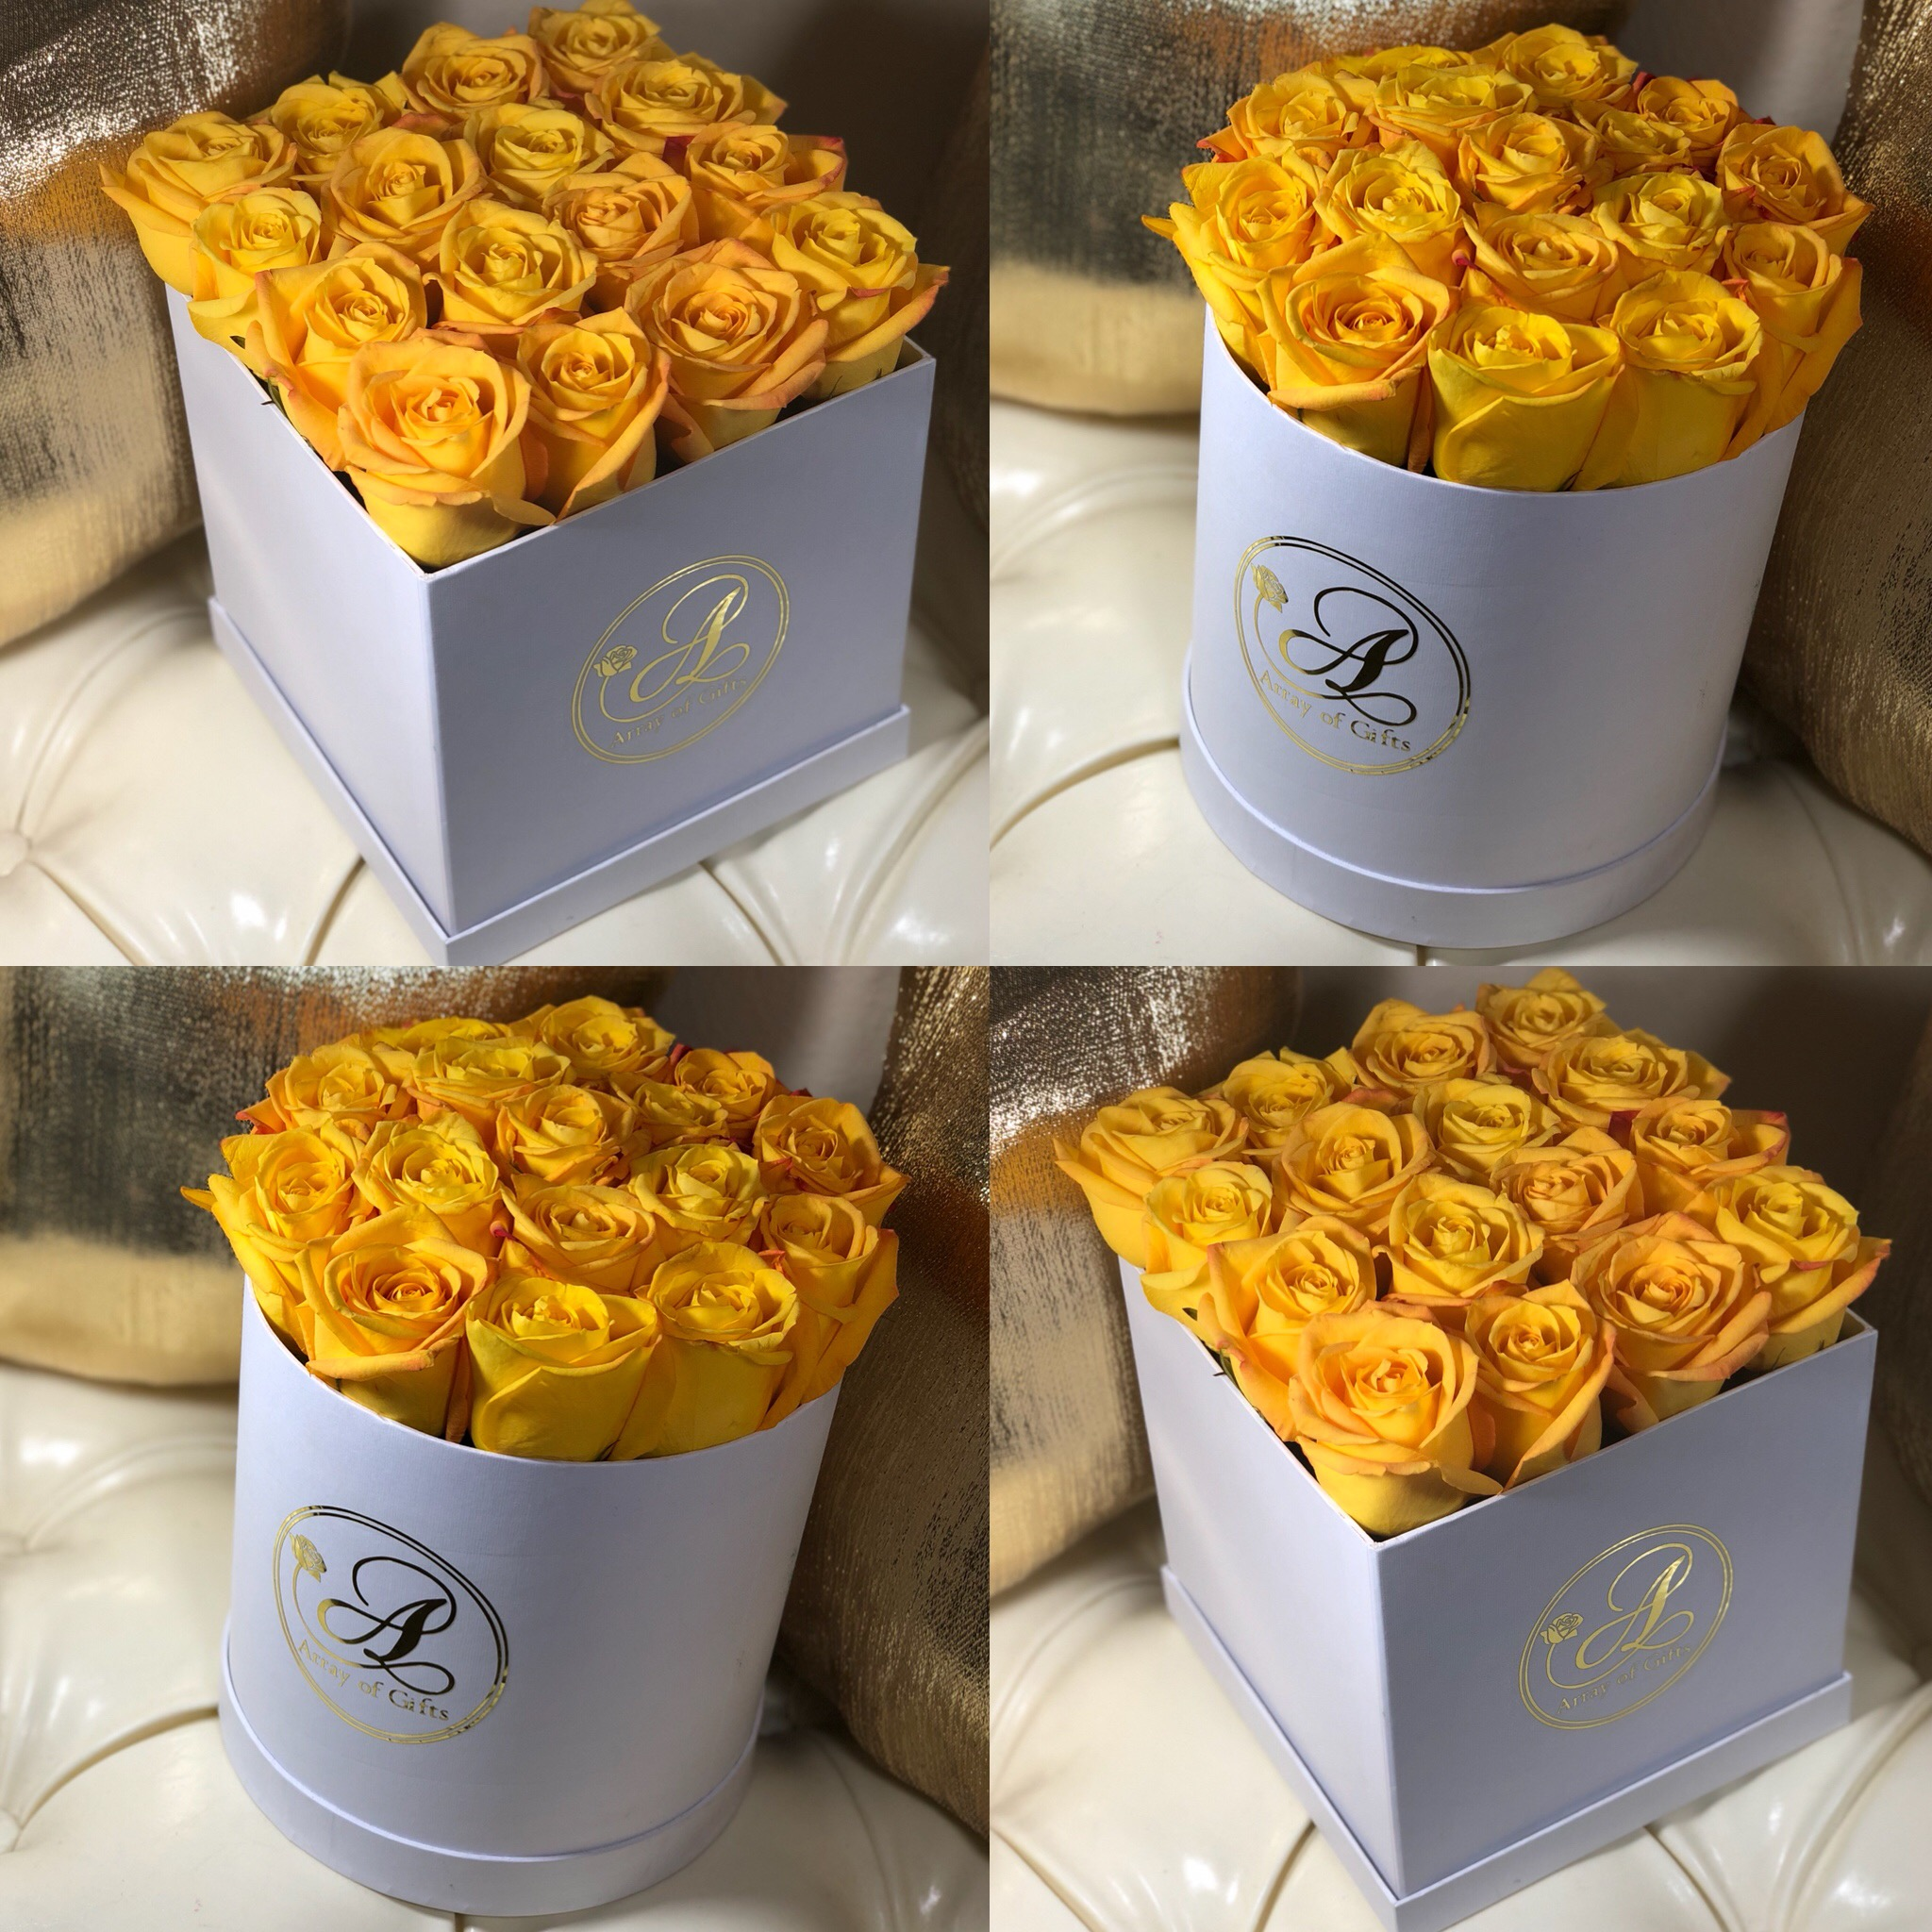 Luxury Flower Gift Boxes Array Of Gifts